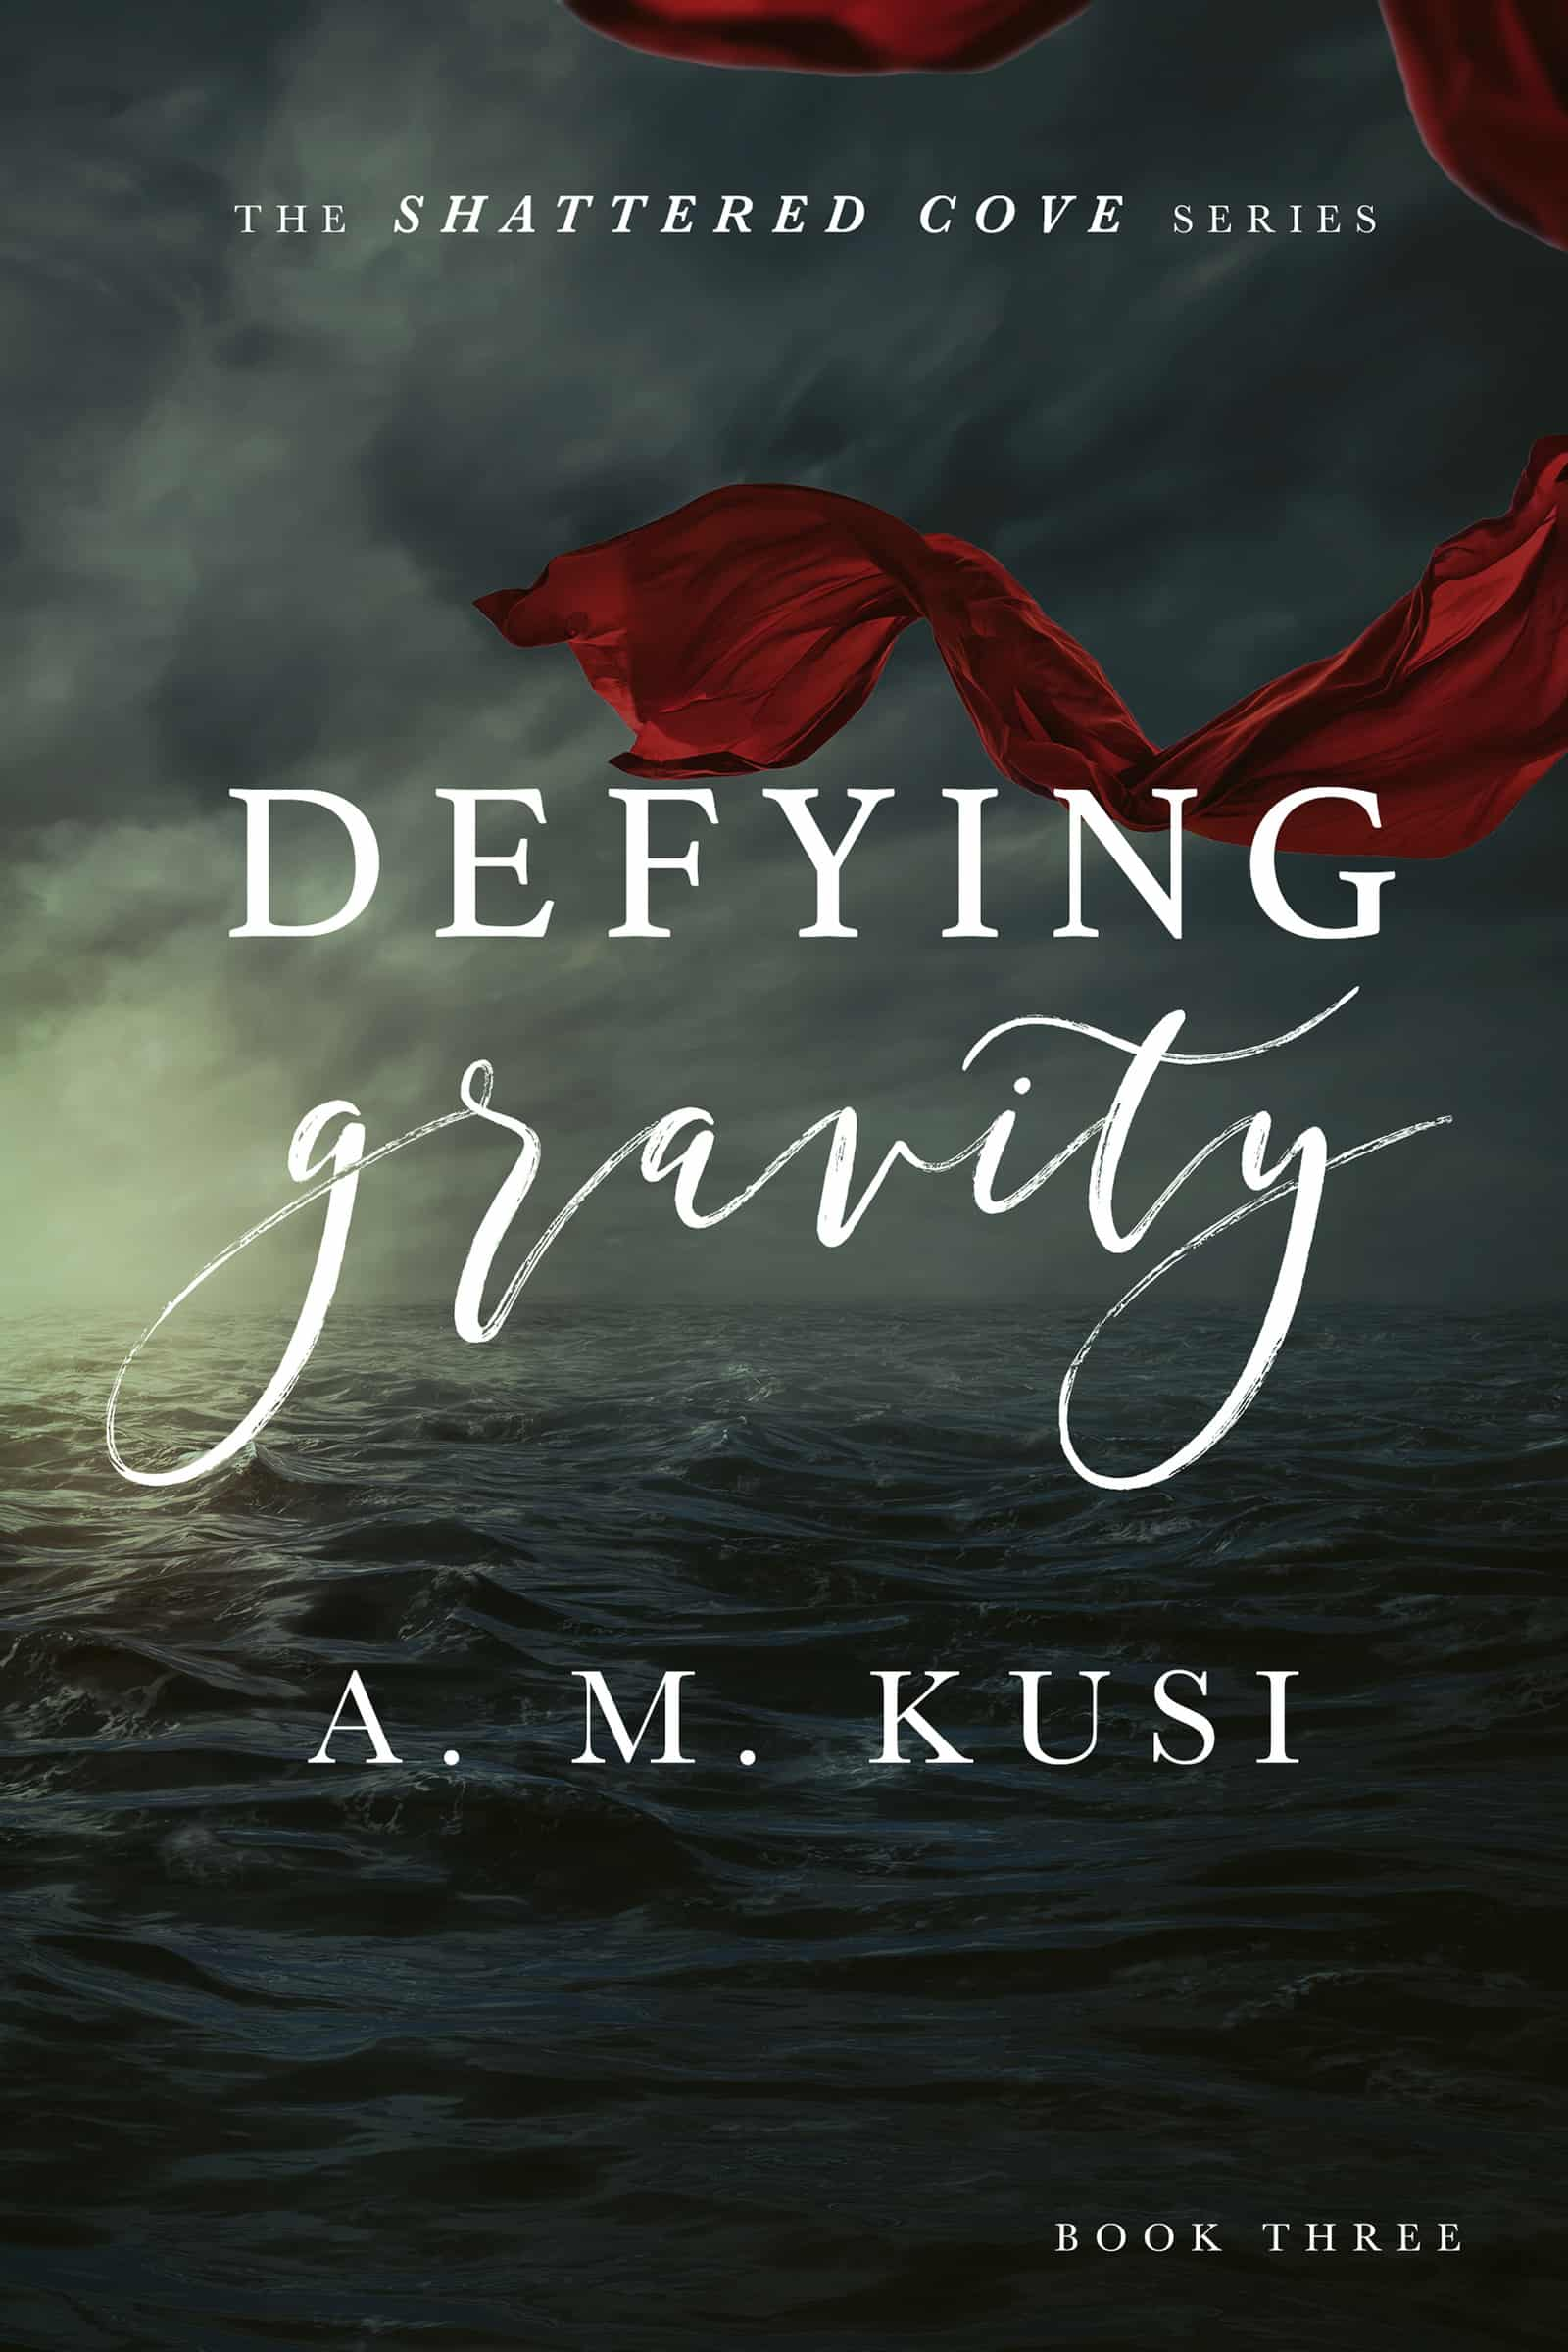 Defying Gravity by A. M. Kusi MBR My Book Ratings content-rated book